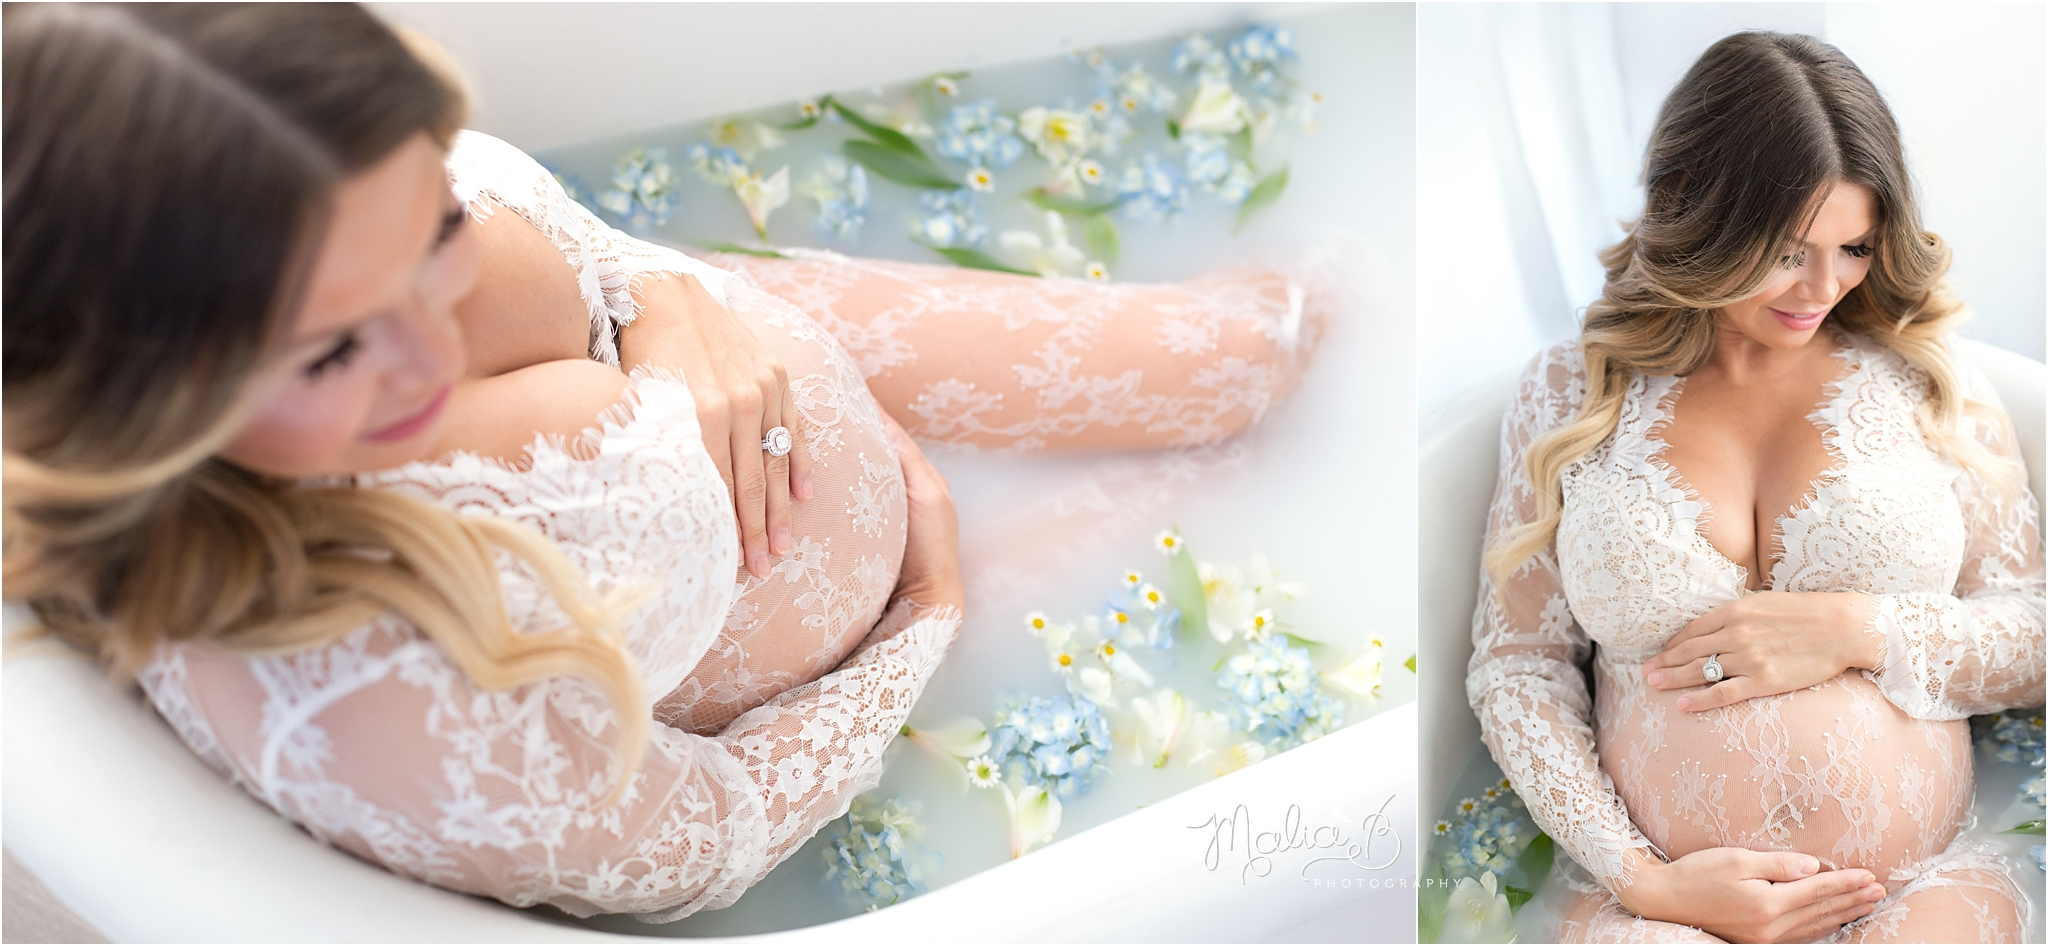 Floral Maternity Milk Bath Photography Malia B Photography